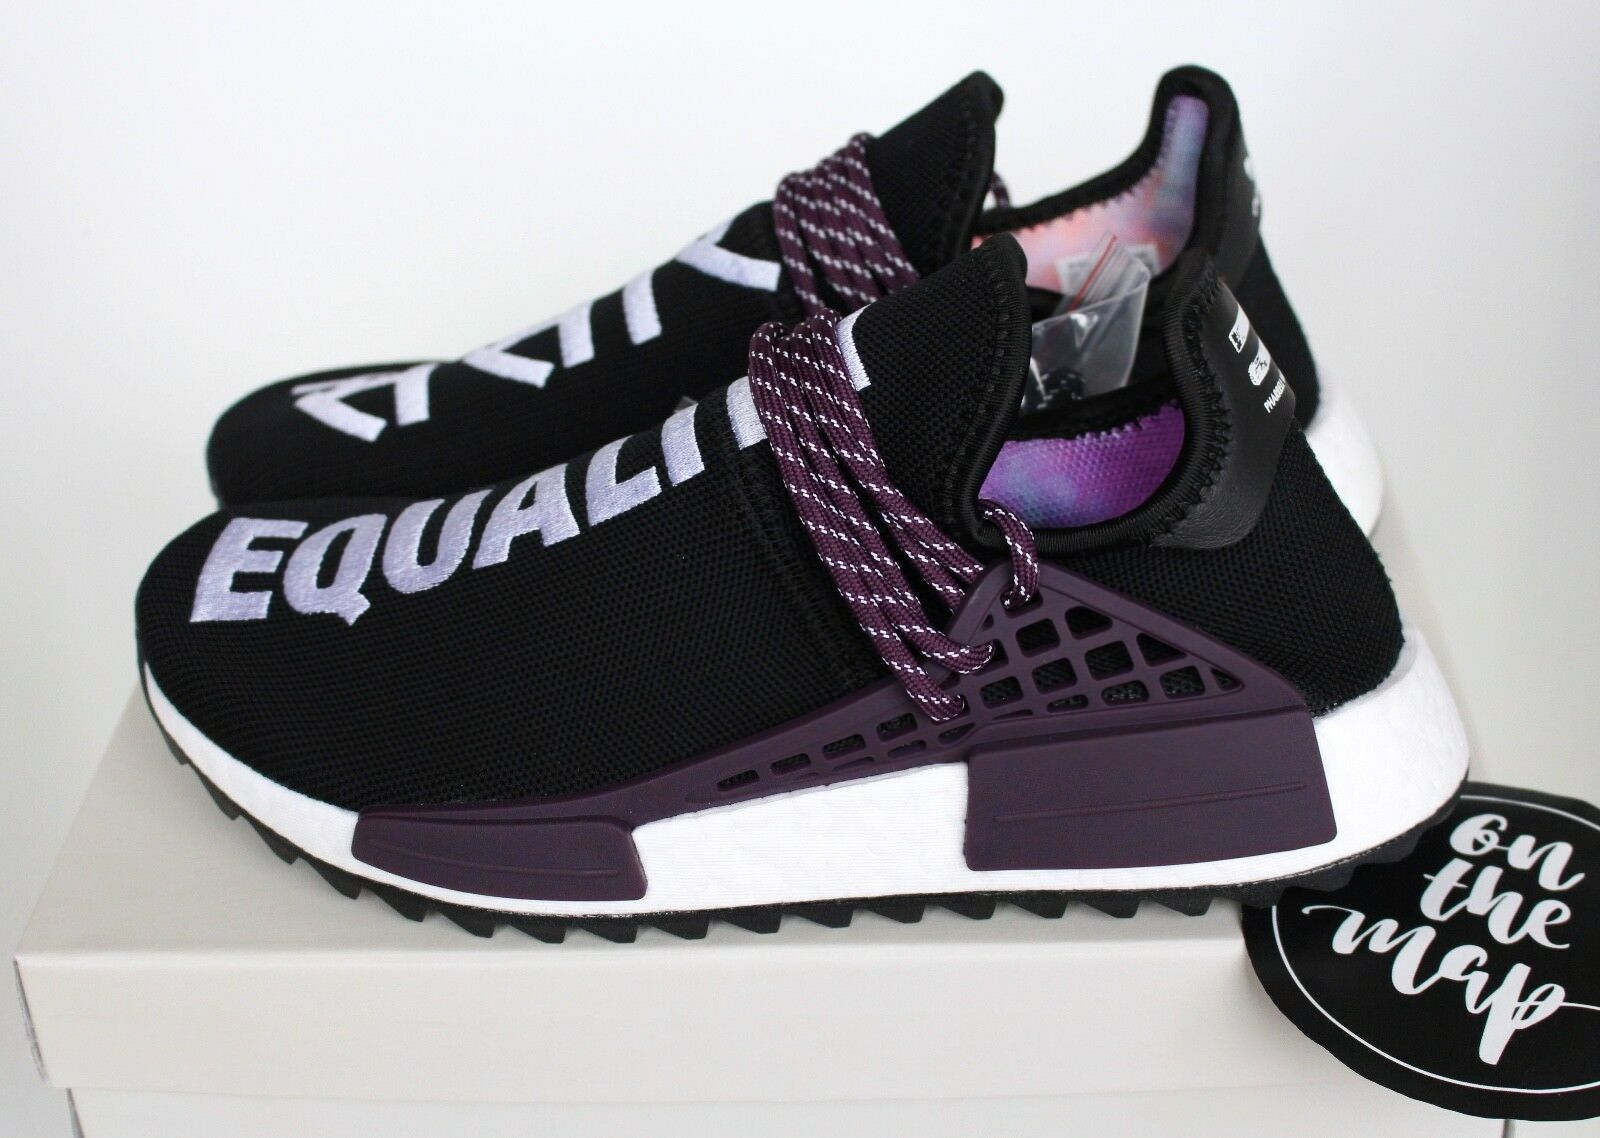 Adidas Pharrell Human Race HU Holi NMD Trail Black Purple 4 5 6 7 8 9 10 11 New